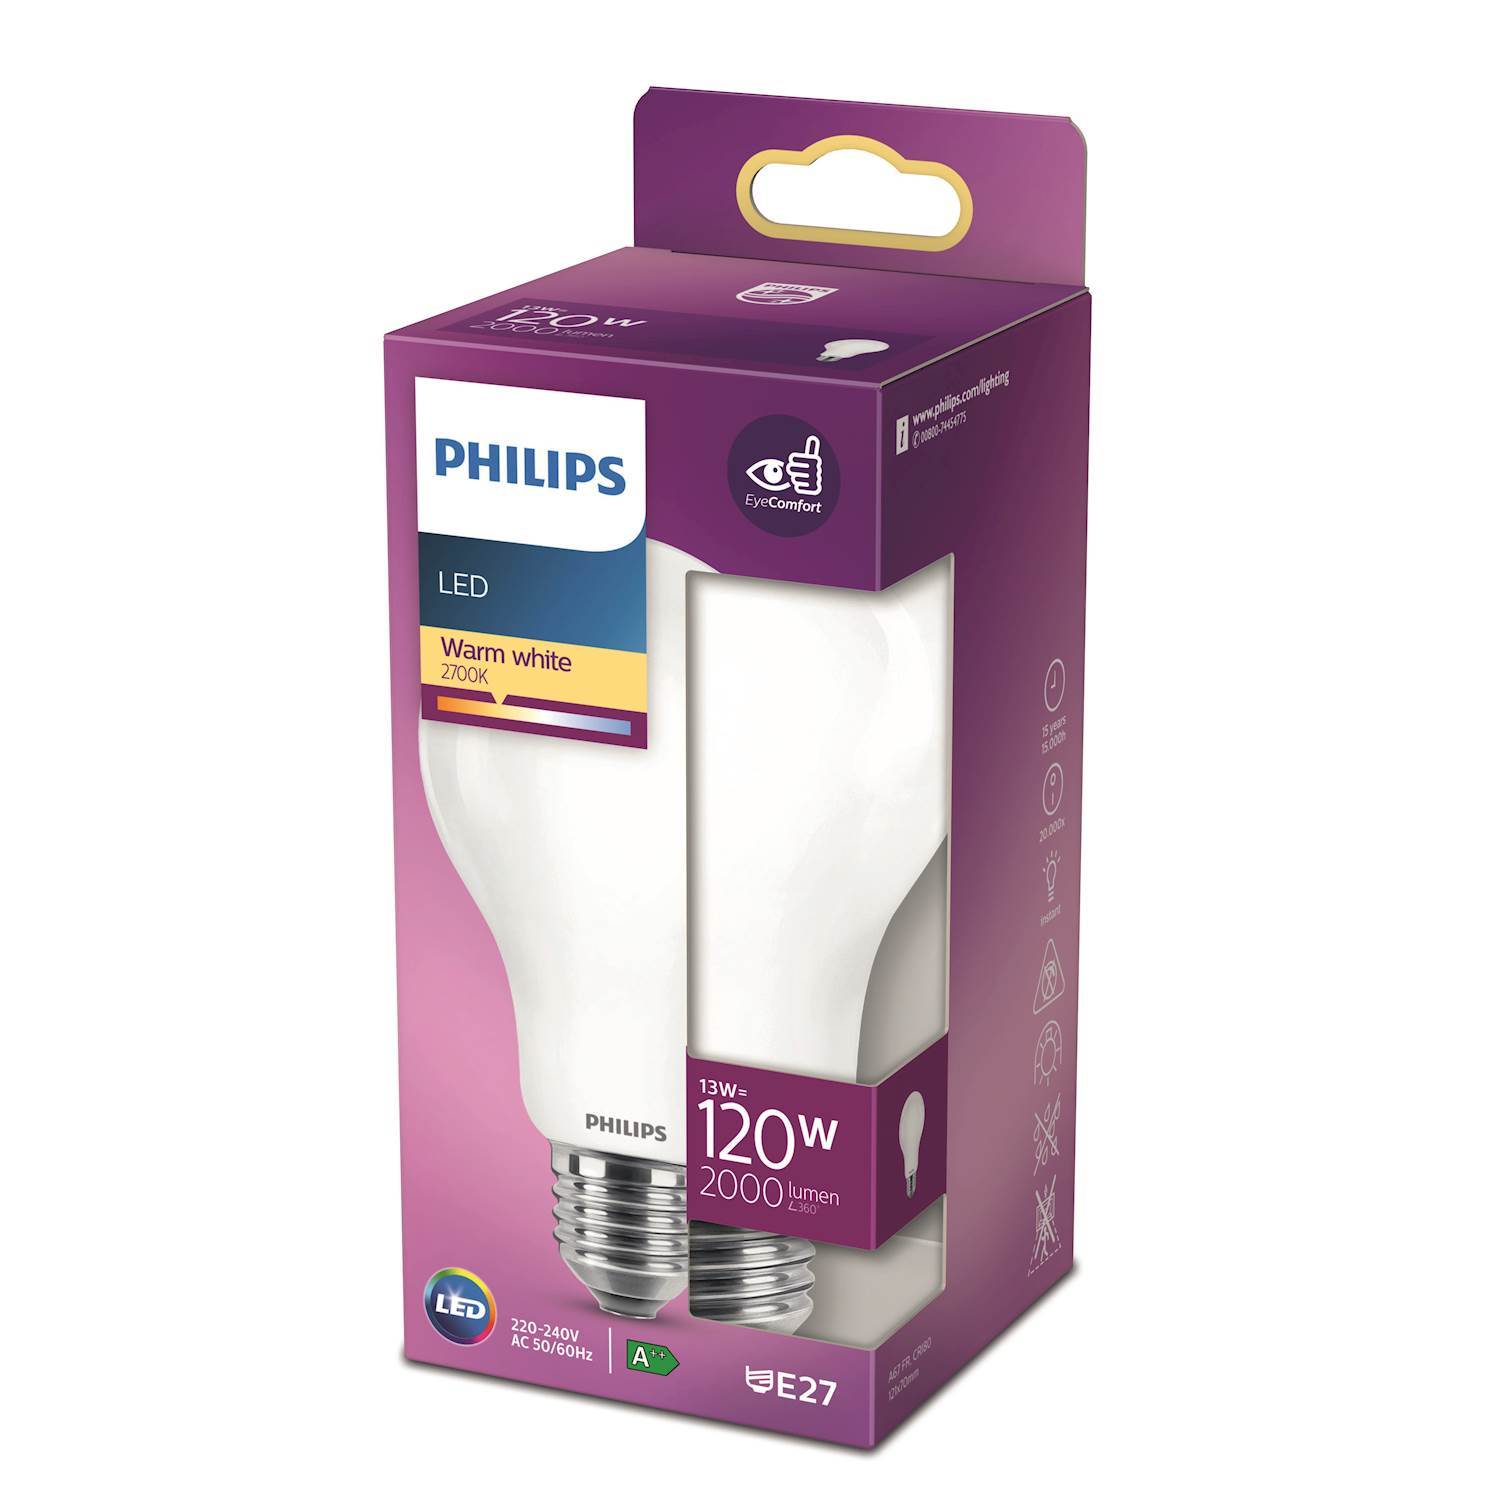 Philips LED Classic 120w norm e27 nd